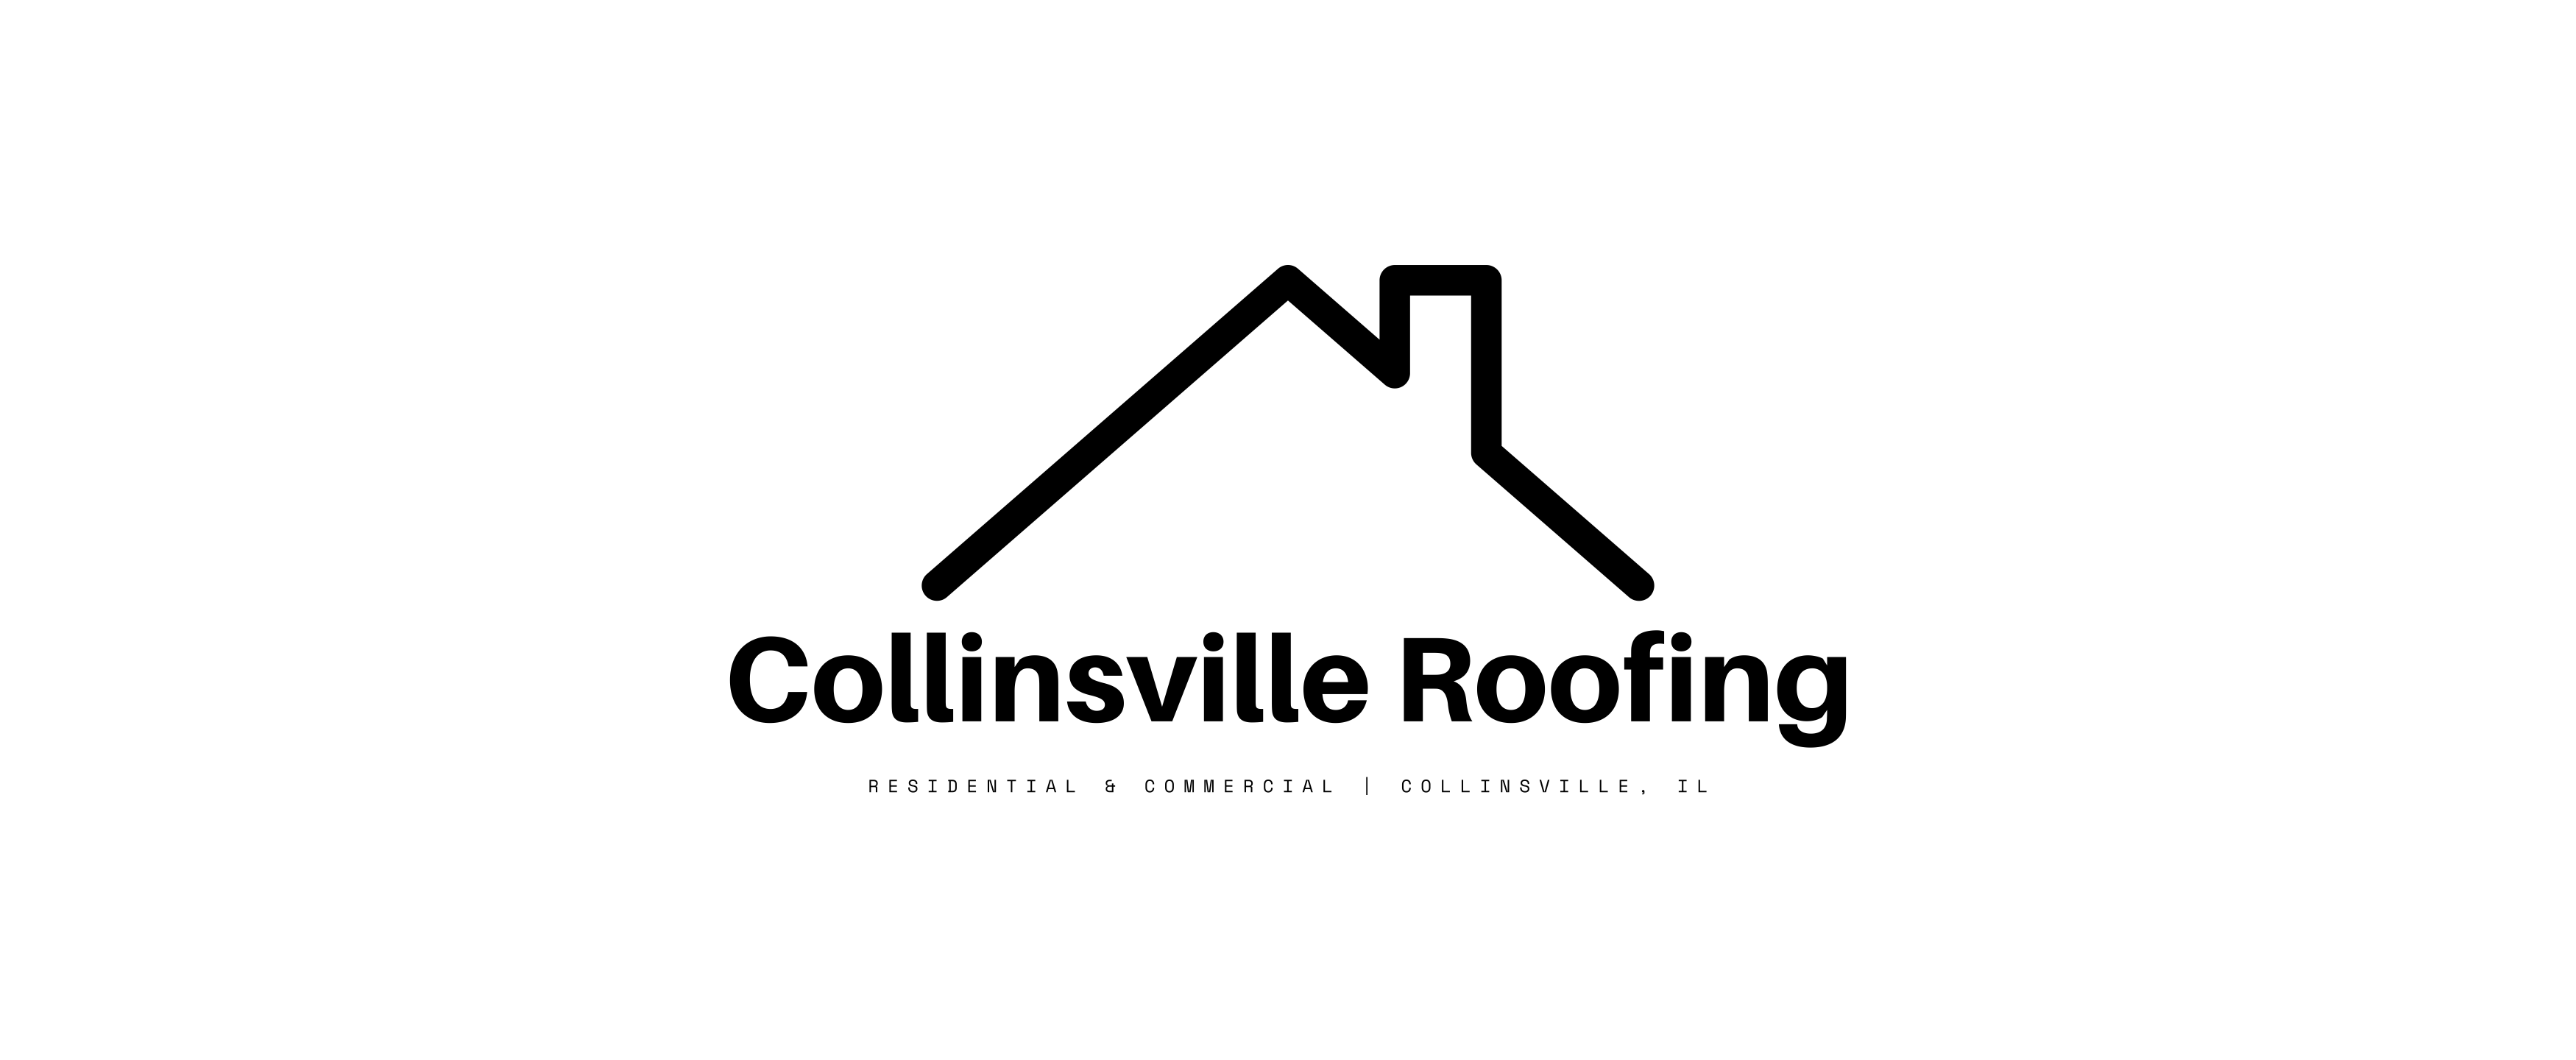 collinsville il professional roofing siding gutters maryville glen carbon troy caseyville pontoon beach granite city illinois